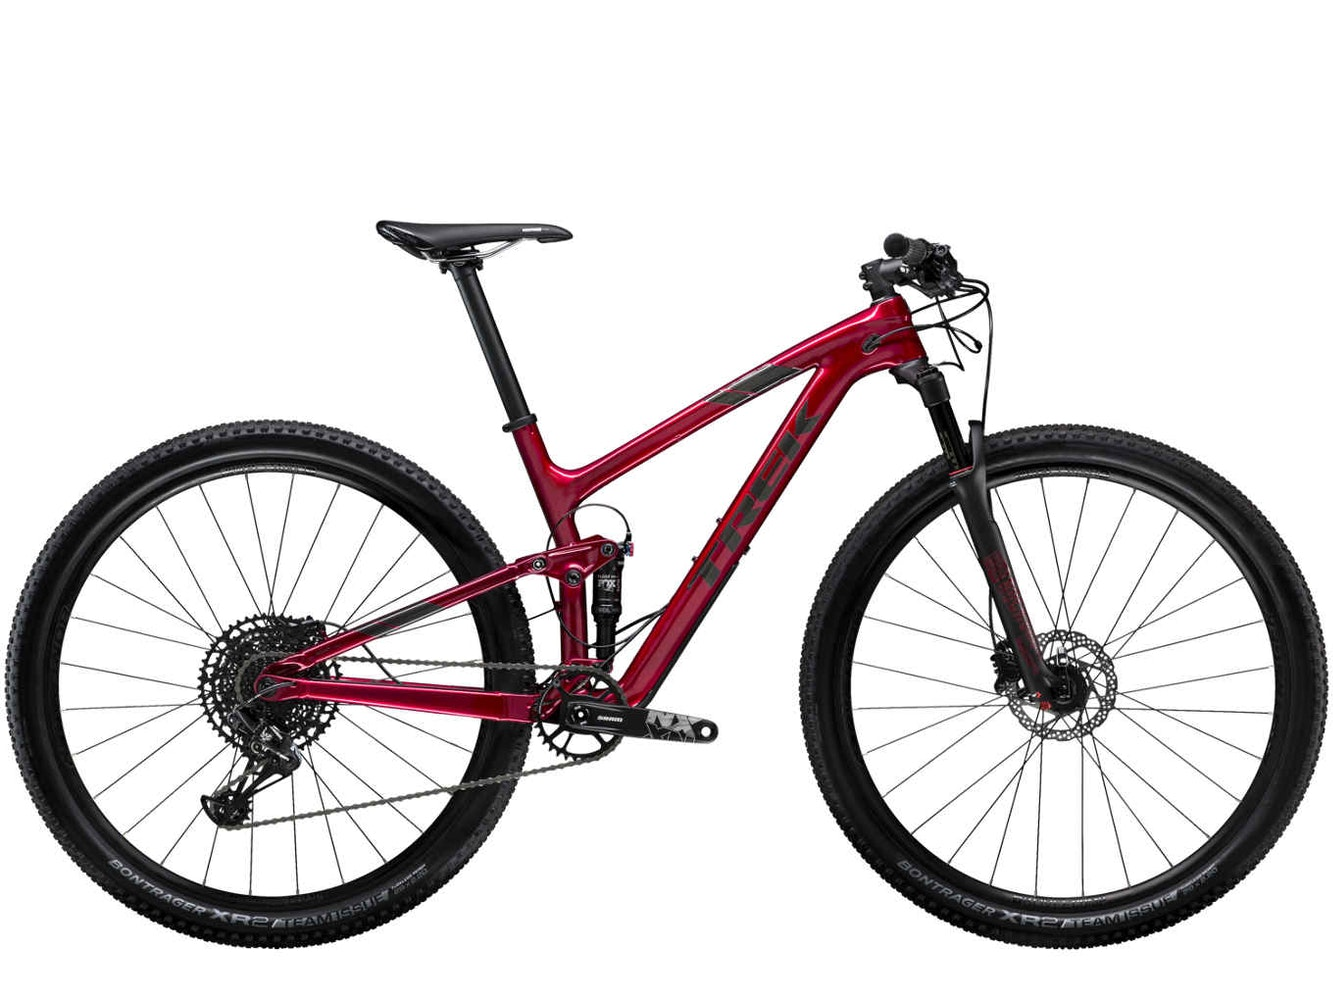 trek top fuel 9 7 27 5 2019 dual suspension mountain bikes for sale in lane cove. Black Bedroom Furniture Sets. Home Design Ideas